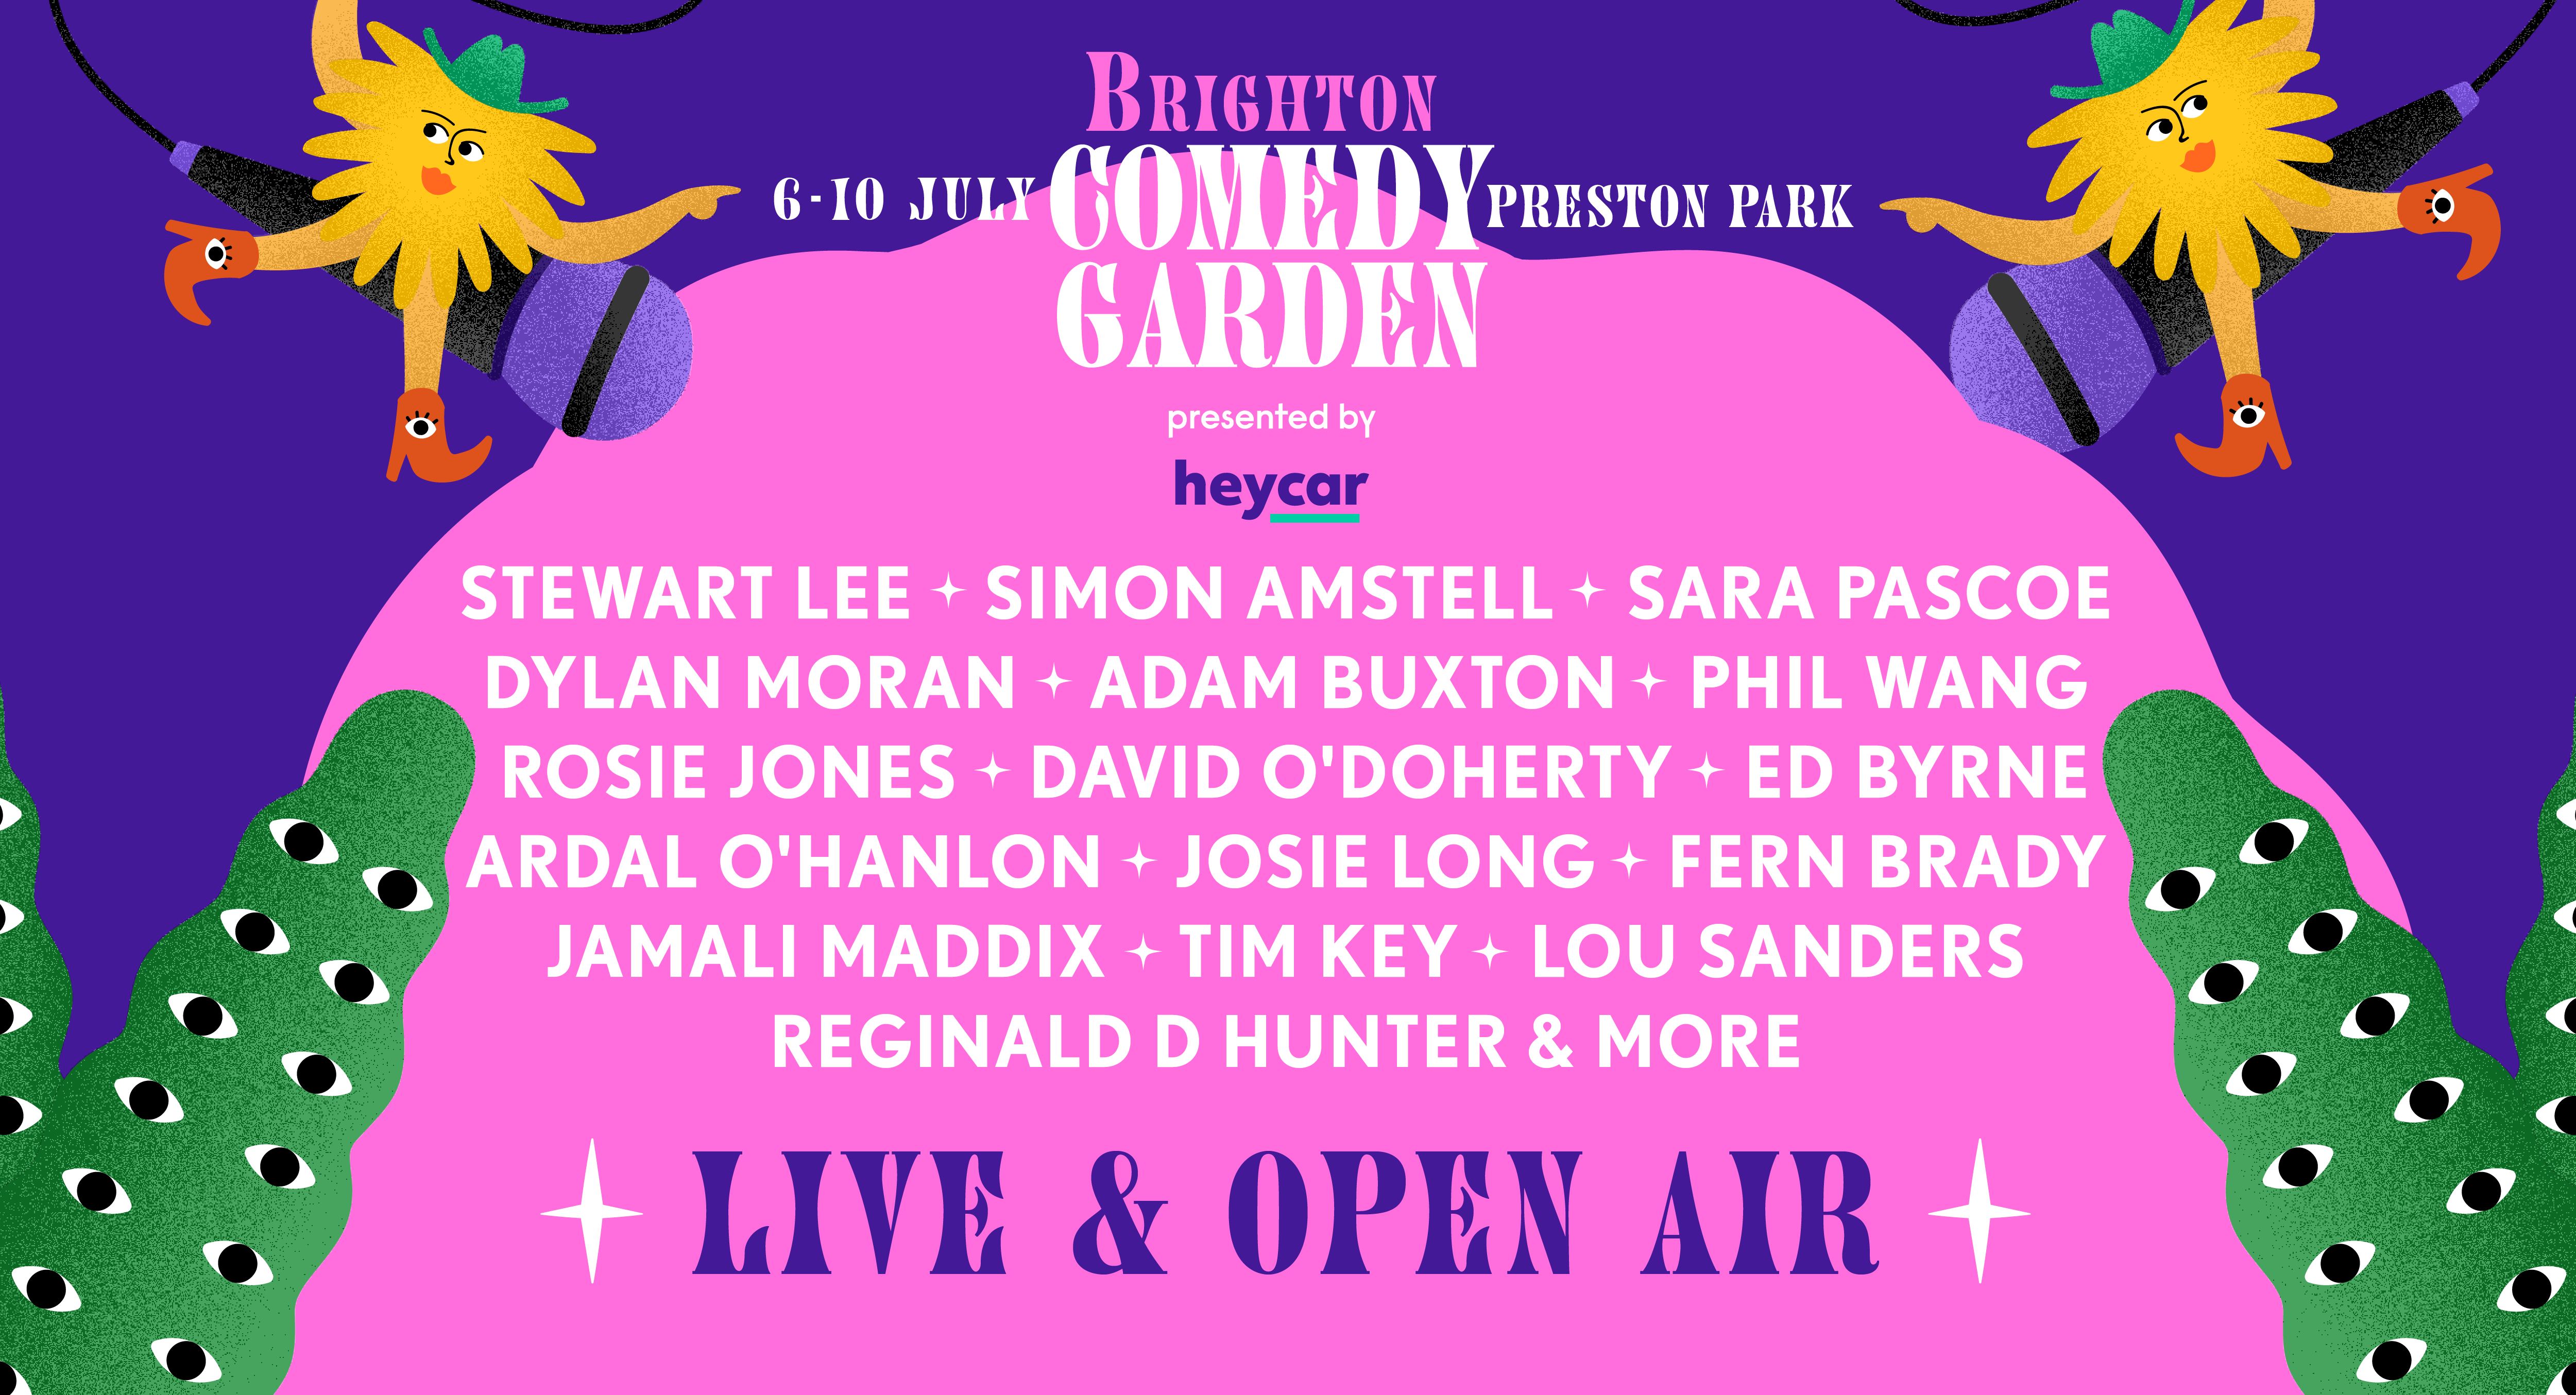 brightoncomedygarden